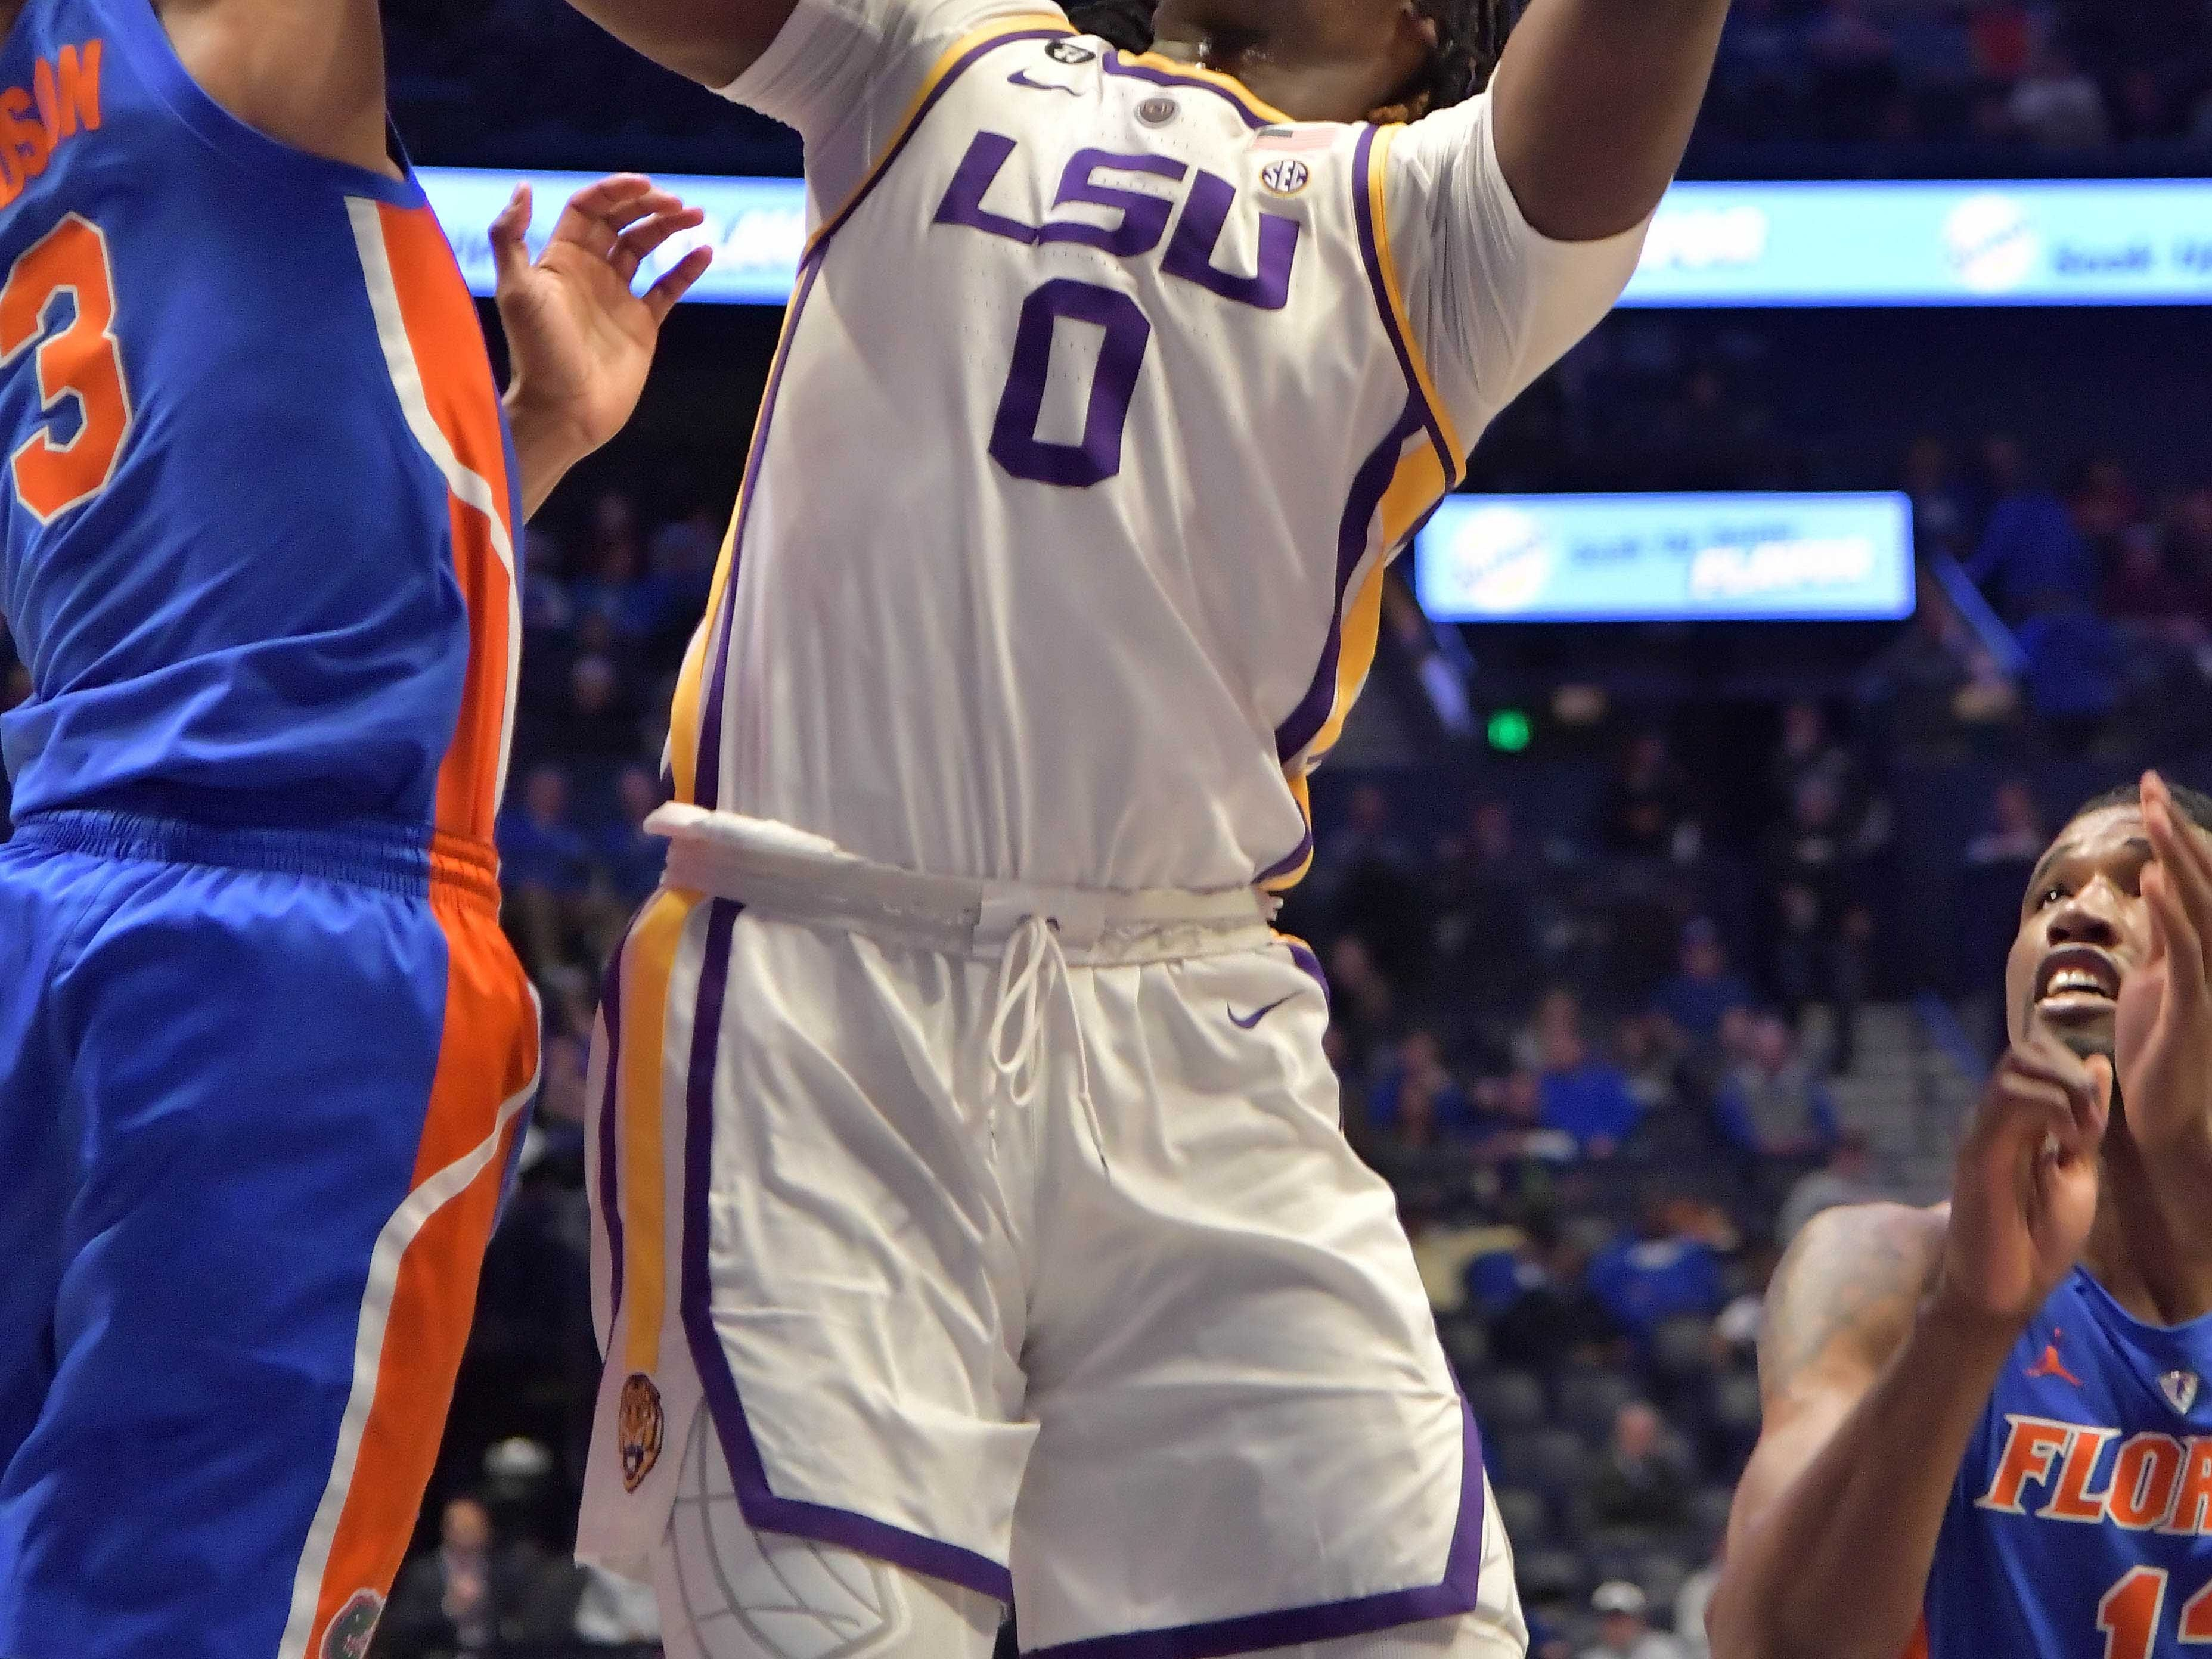 Mar 15, 2019; Nashville, TN, USA; LSU Tigers forward Naz Reid (0) shoots against Florida Gators guard Jalen Hudson (3) during the second half of game seven in the SEC conference tournament at Bridgestone Arena. Mandatory Credit: Jim Brown-USA TODAY Sports